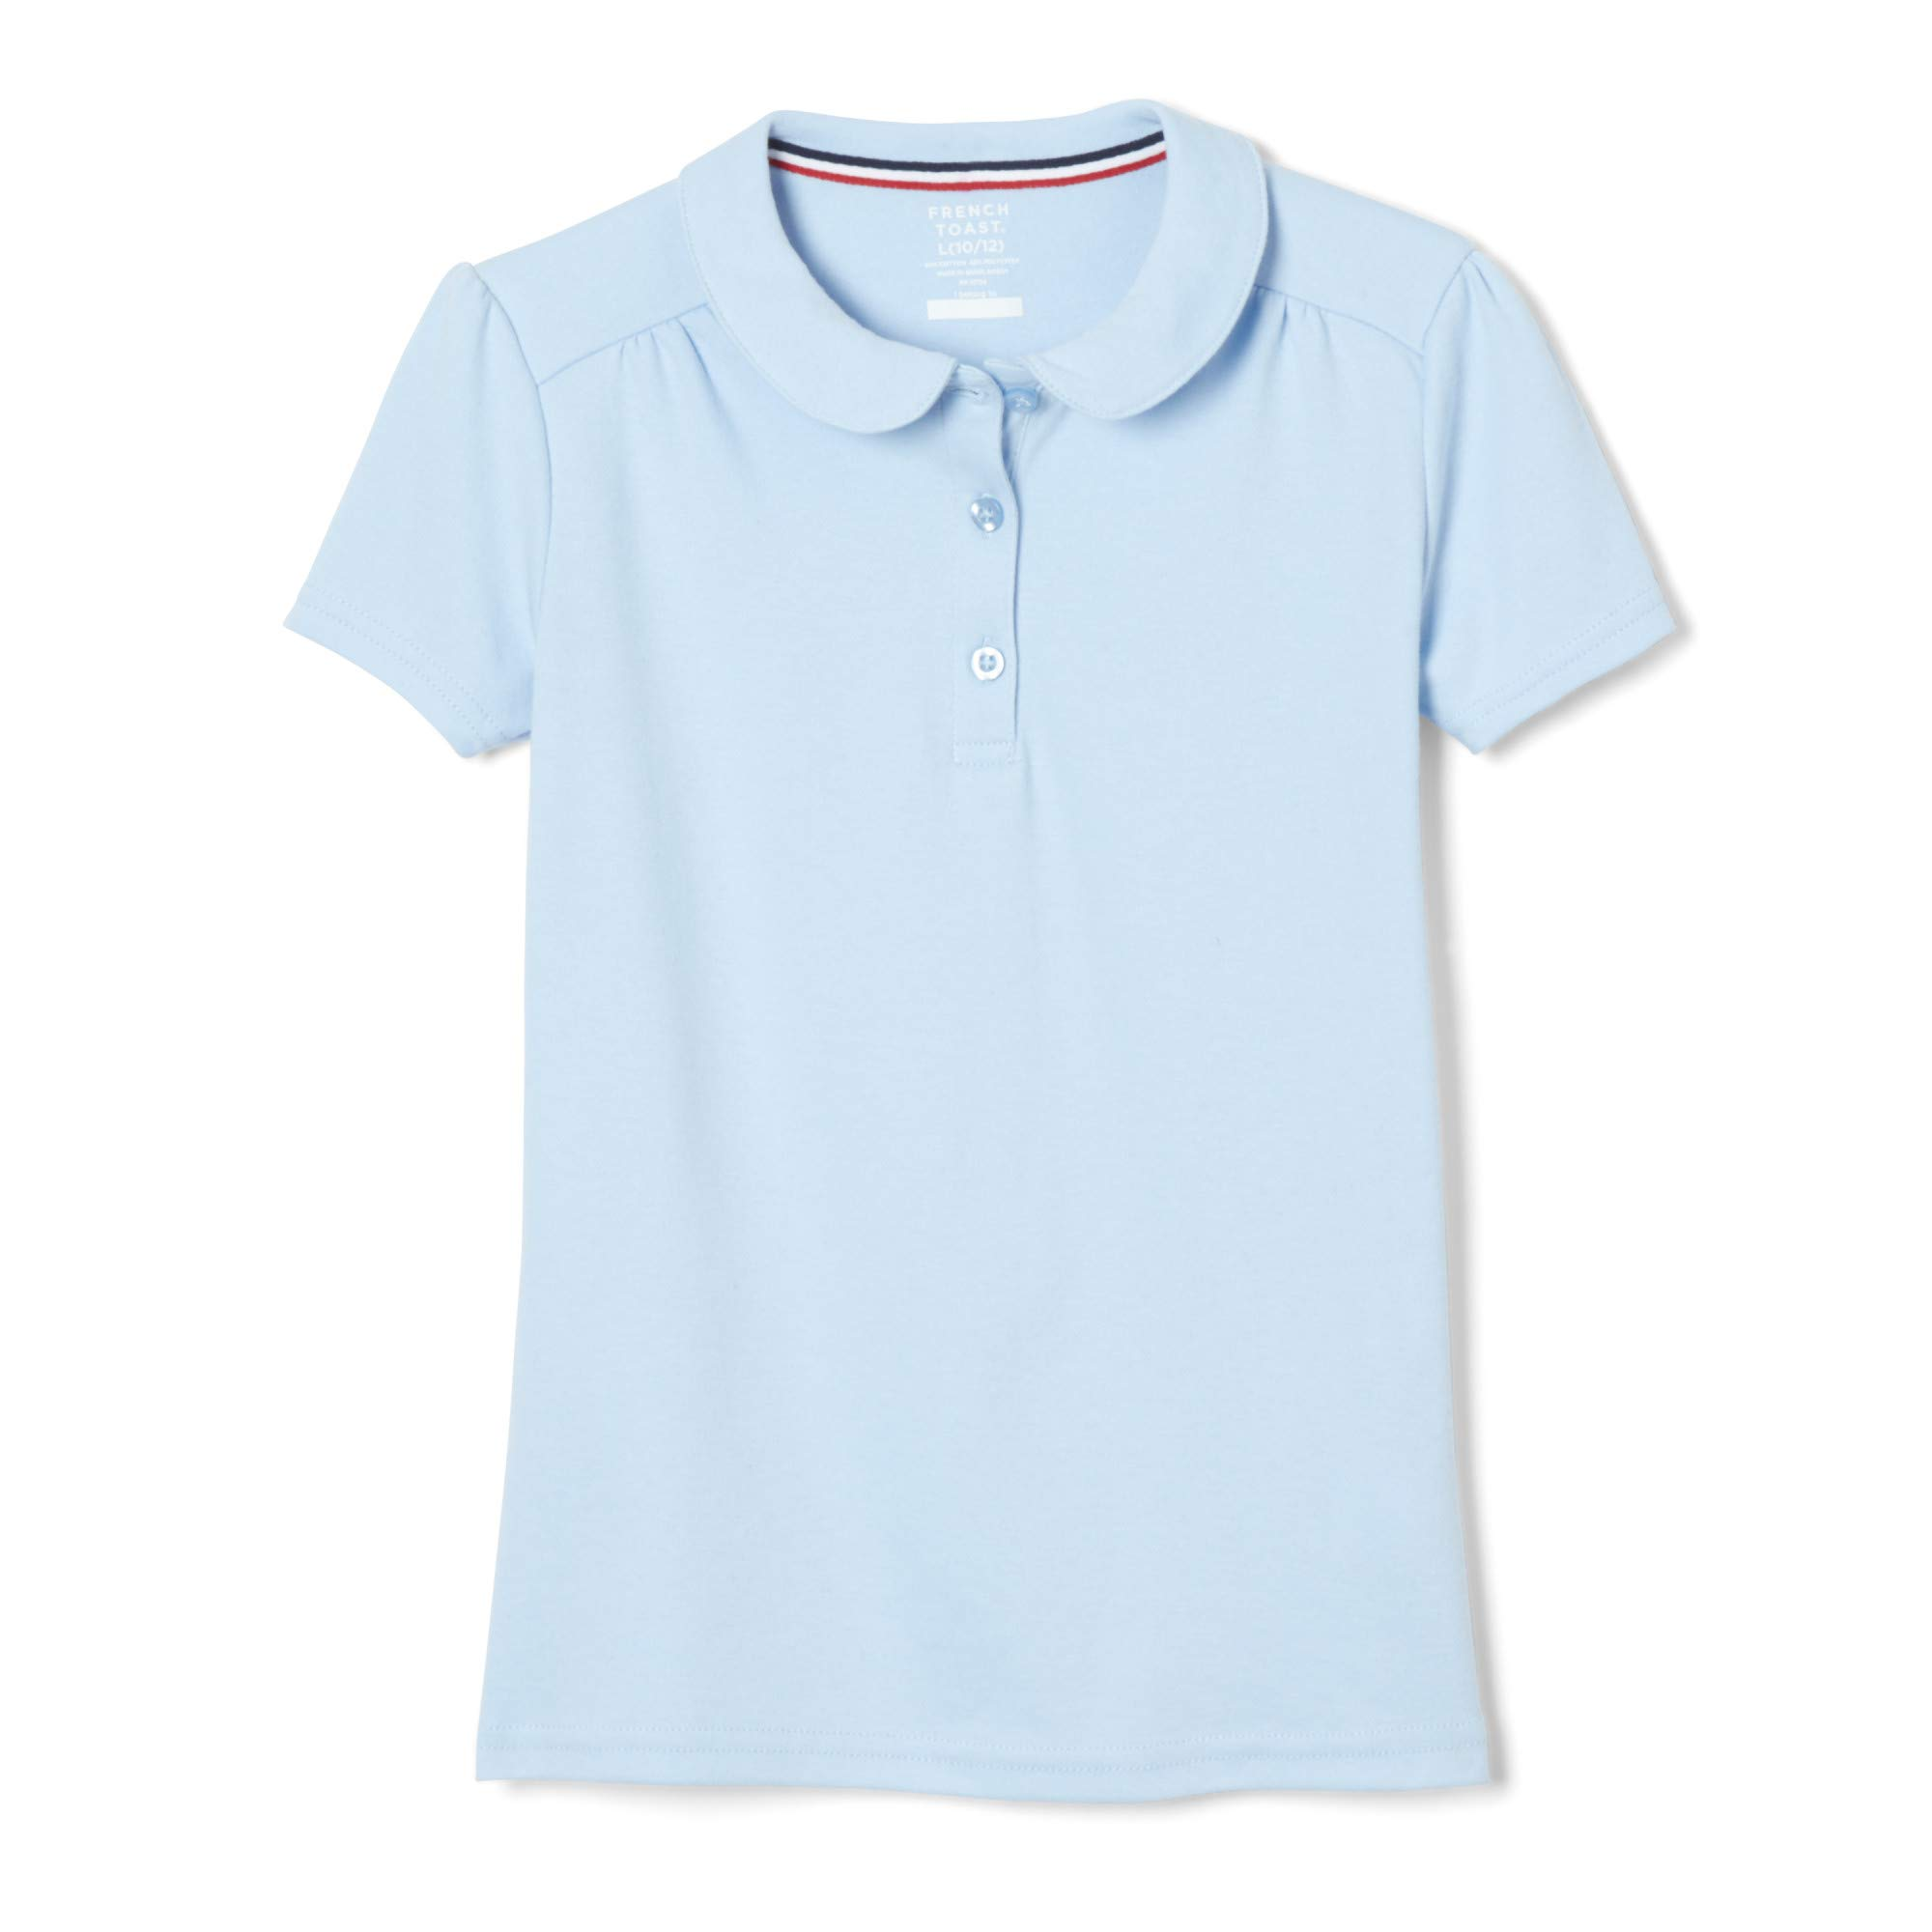 French Toast Girls' Big Short Sleeve Peter Pan Collar Polo Shirt, Light Blue, L (10/12) by French Toast